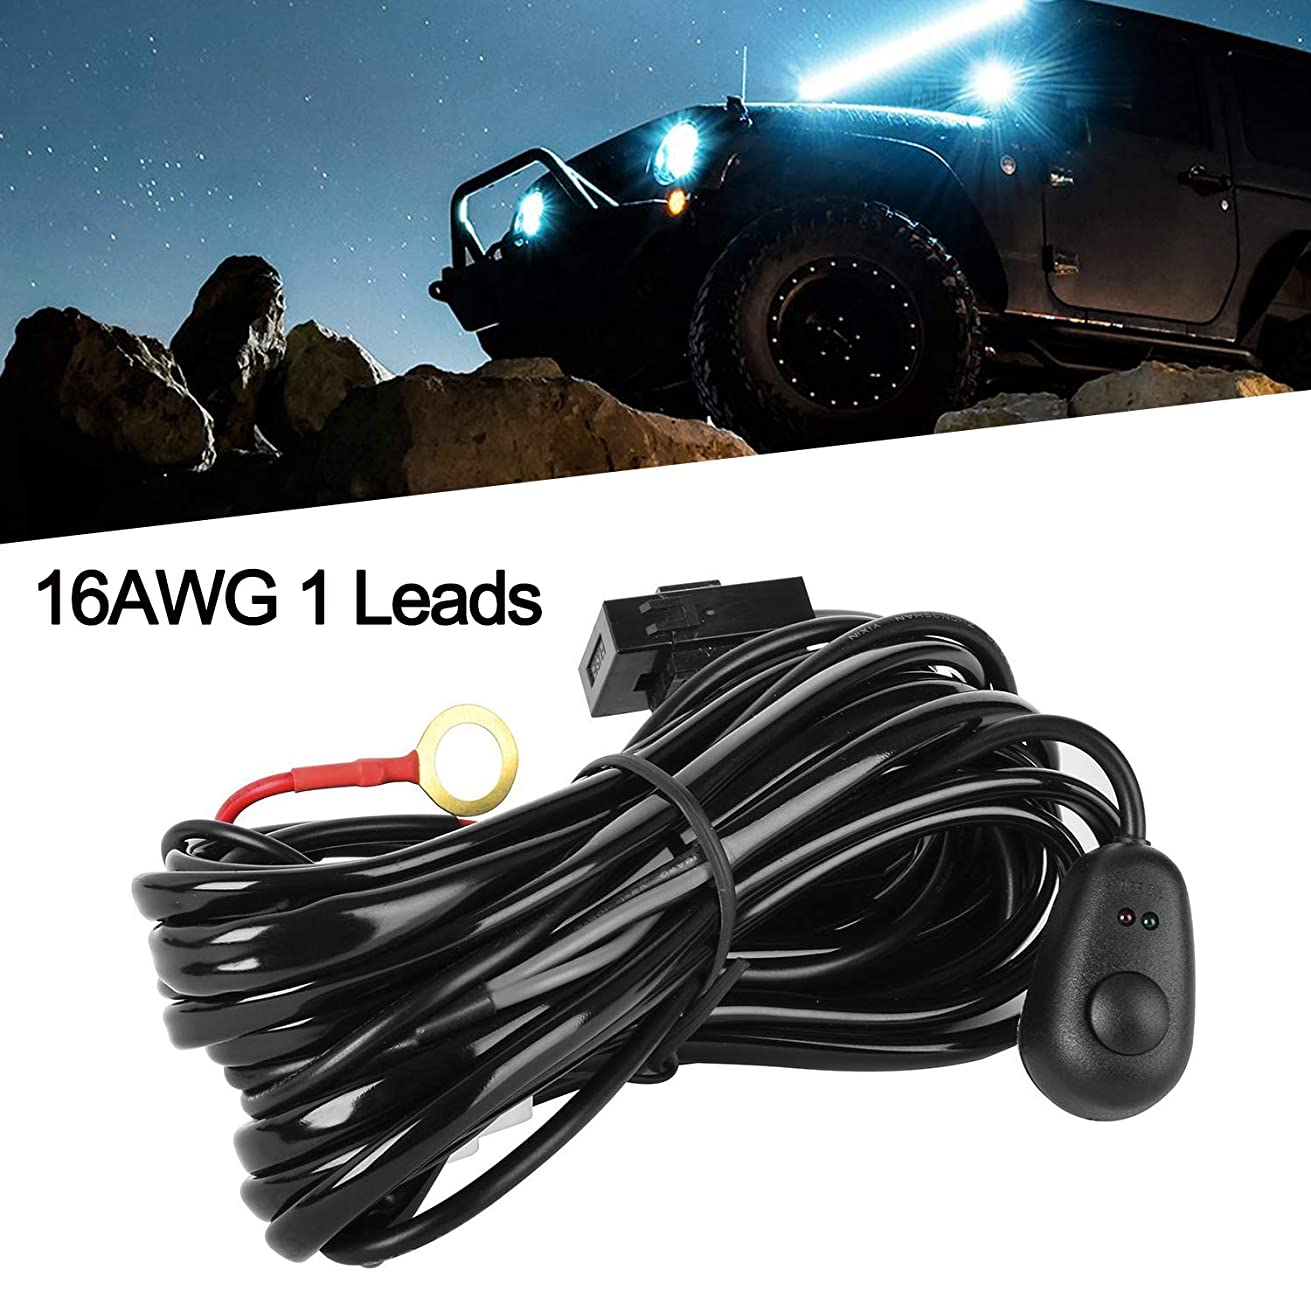 LED Light Bar Wiring Harness Kit 16AWG 12V On Off Switch Power 40A Relay Blade Fuse for Off Road Lights LED Work Light,2 years Warranty (1 Lead)